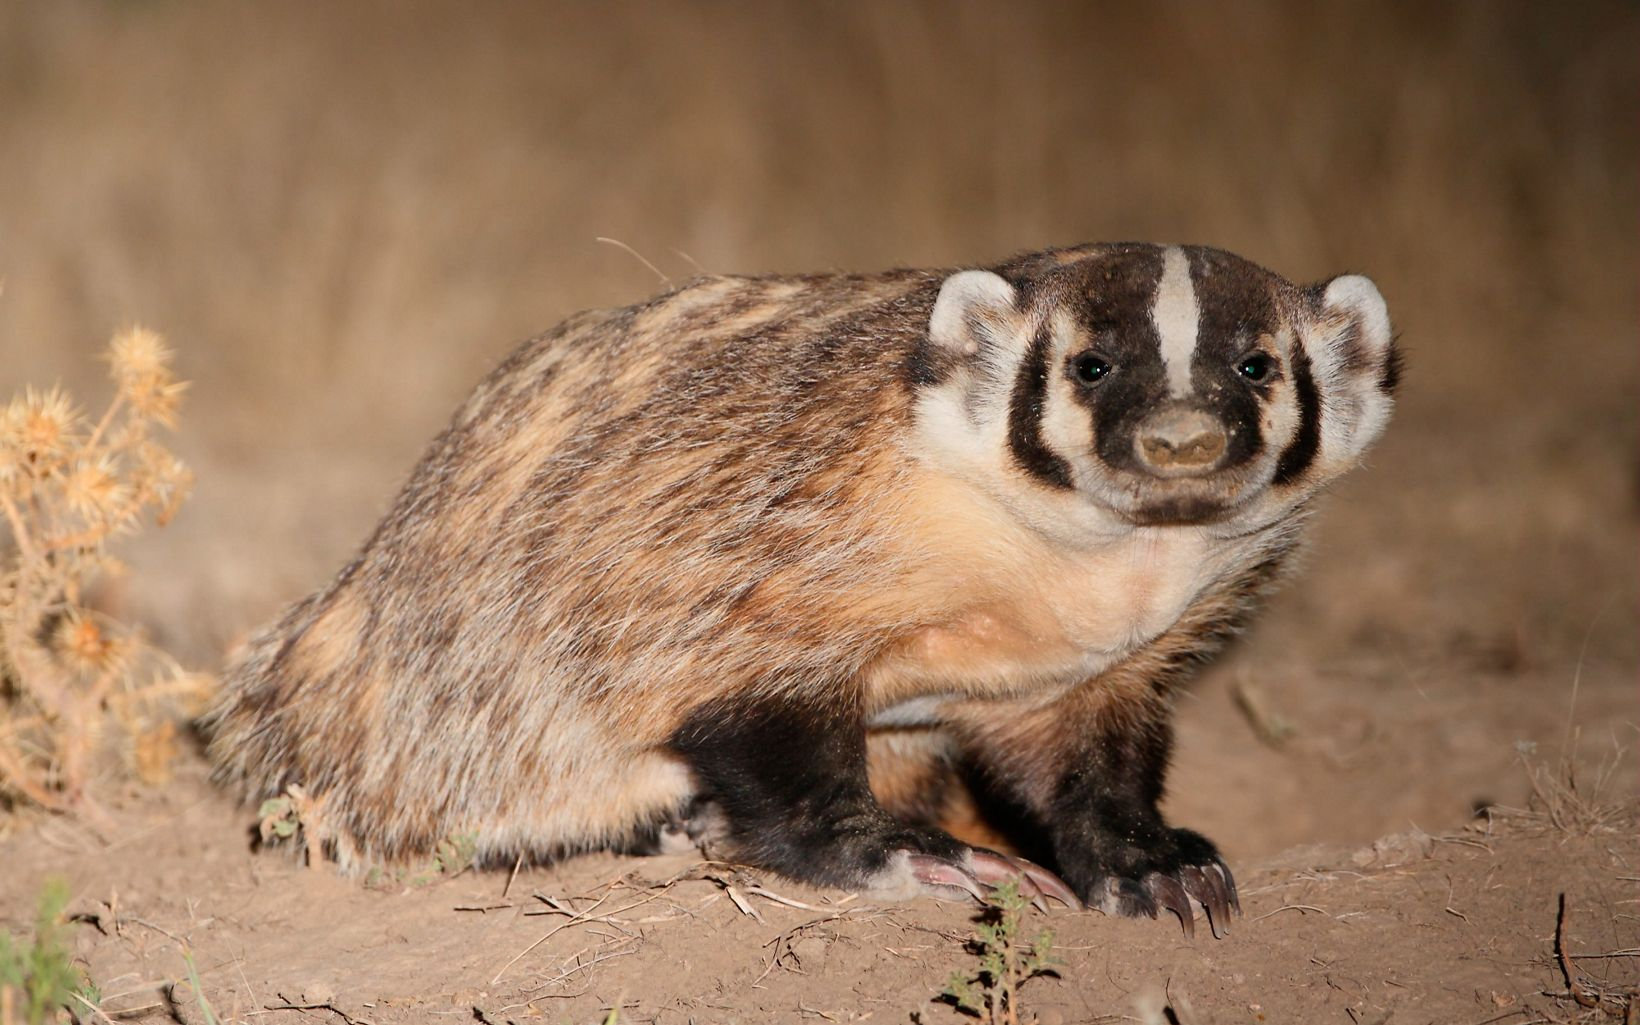 Medium sized mammal with black and white stripes on face.